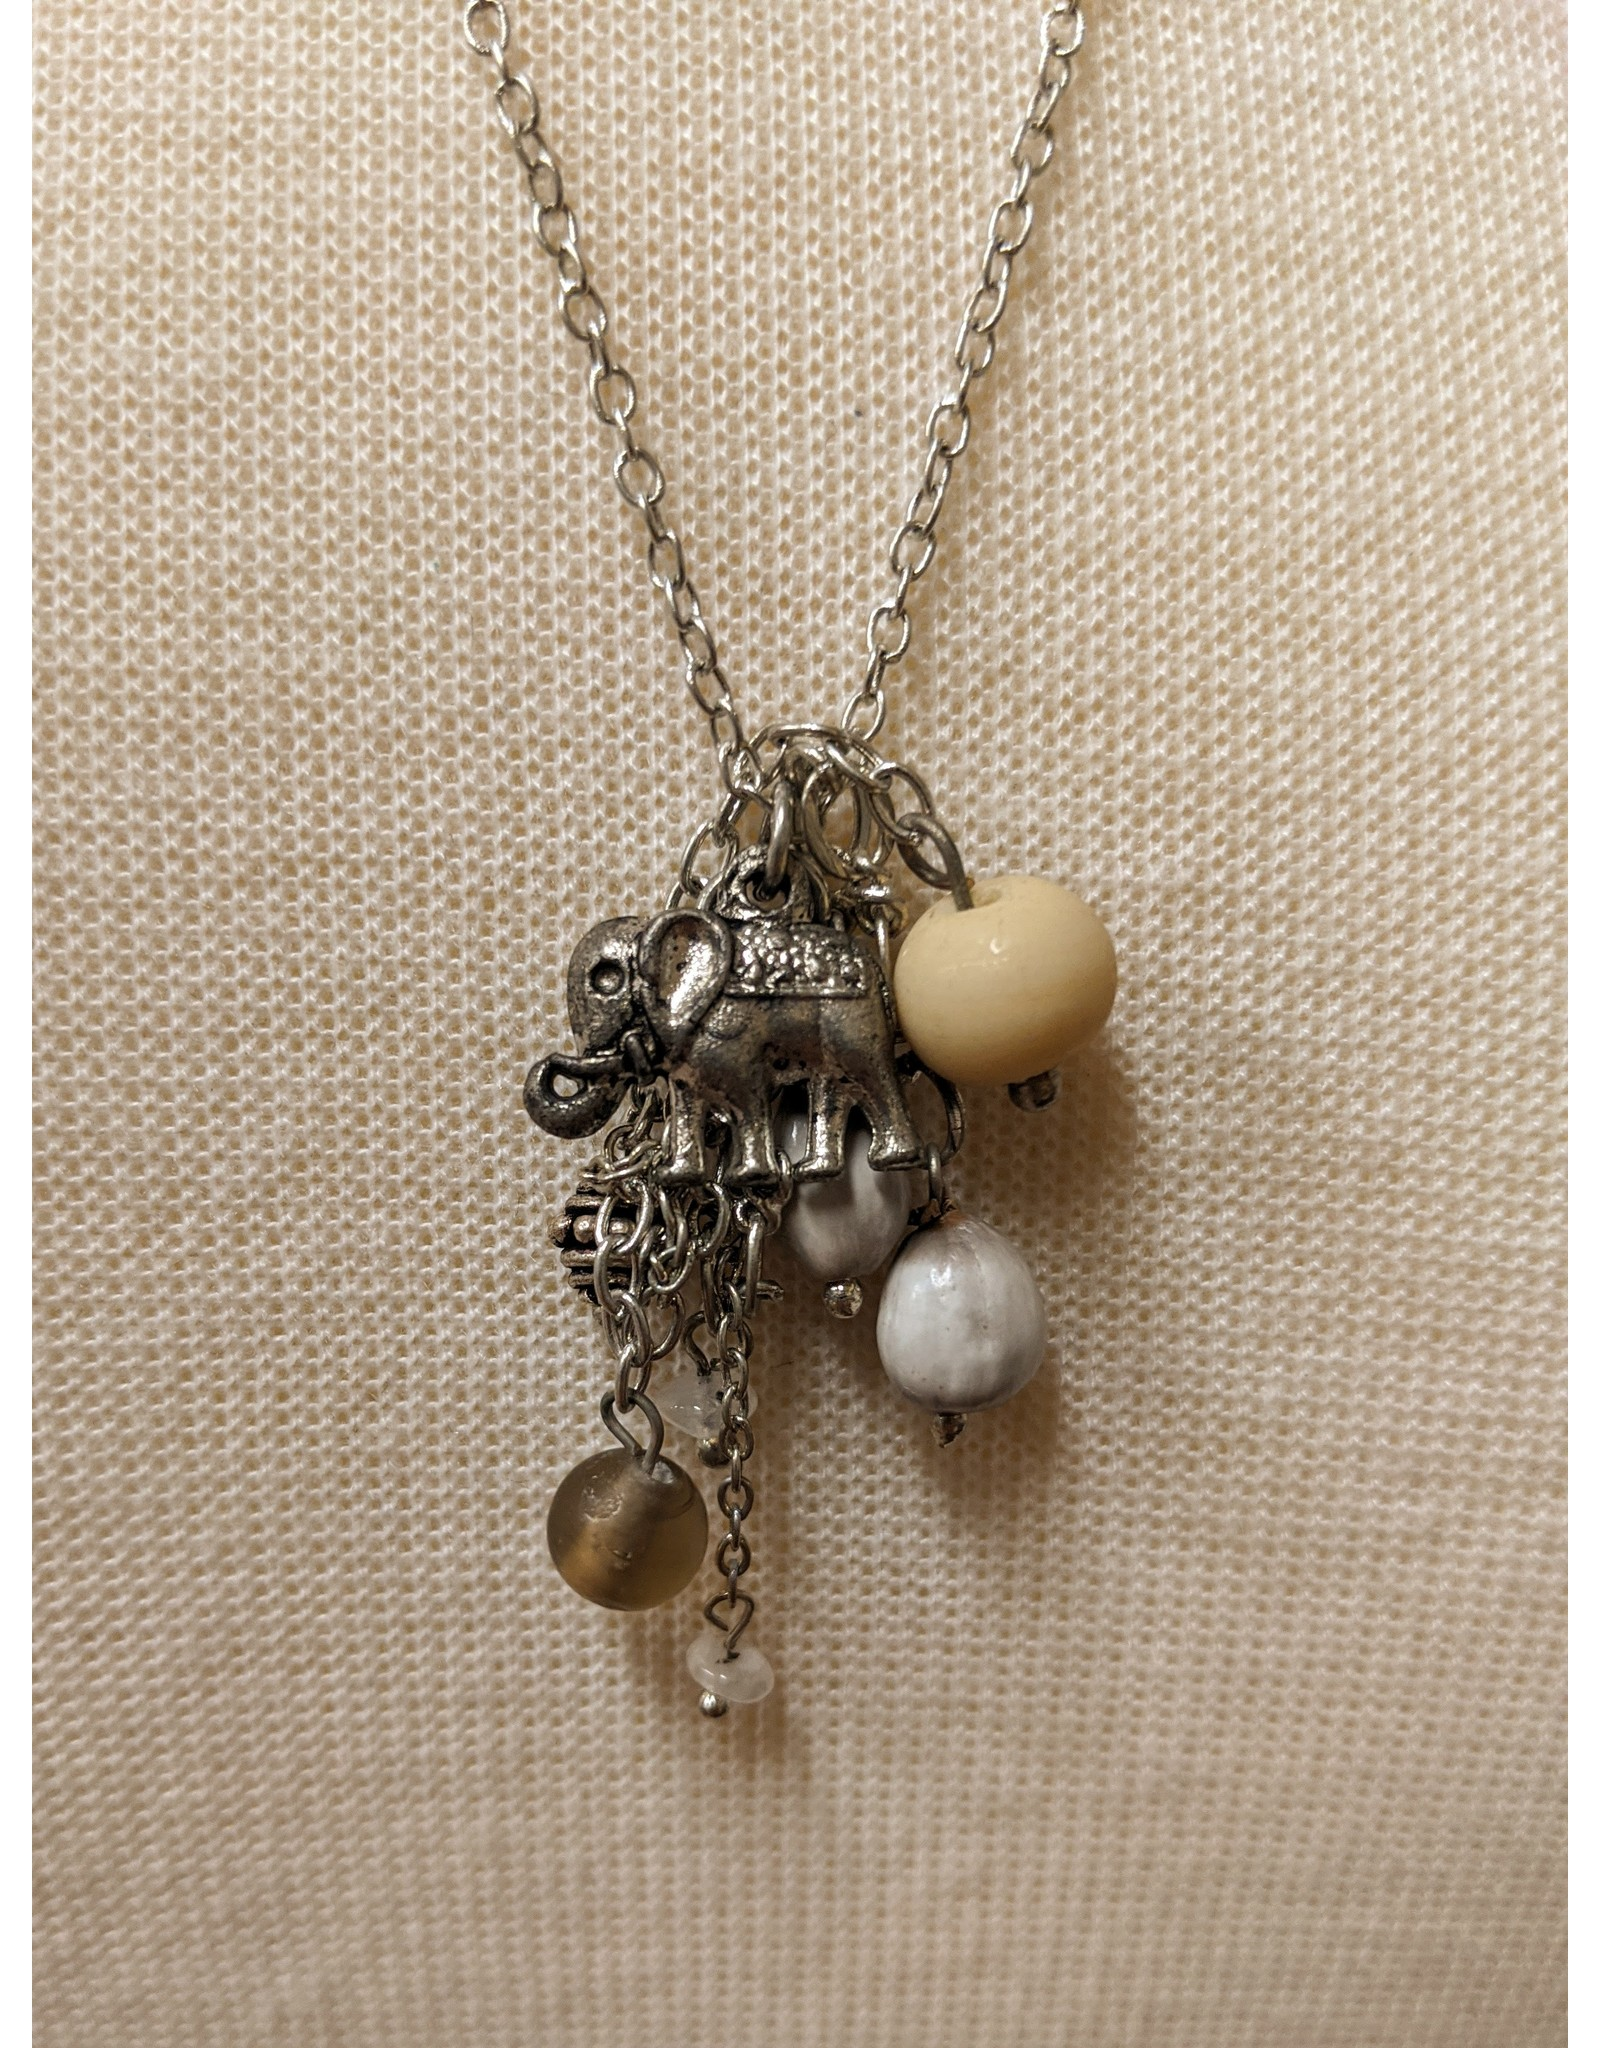 Ten Thousand Villages Elephant Charm Pendant Necklace